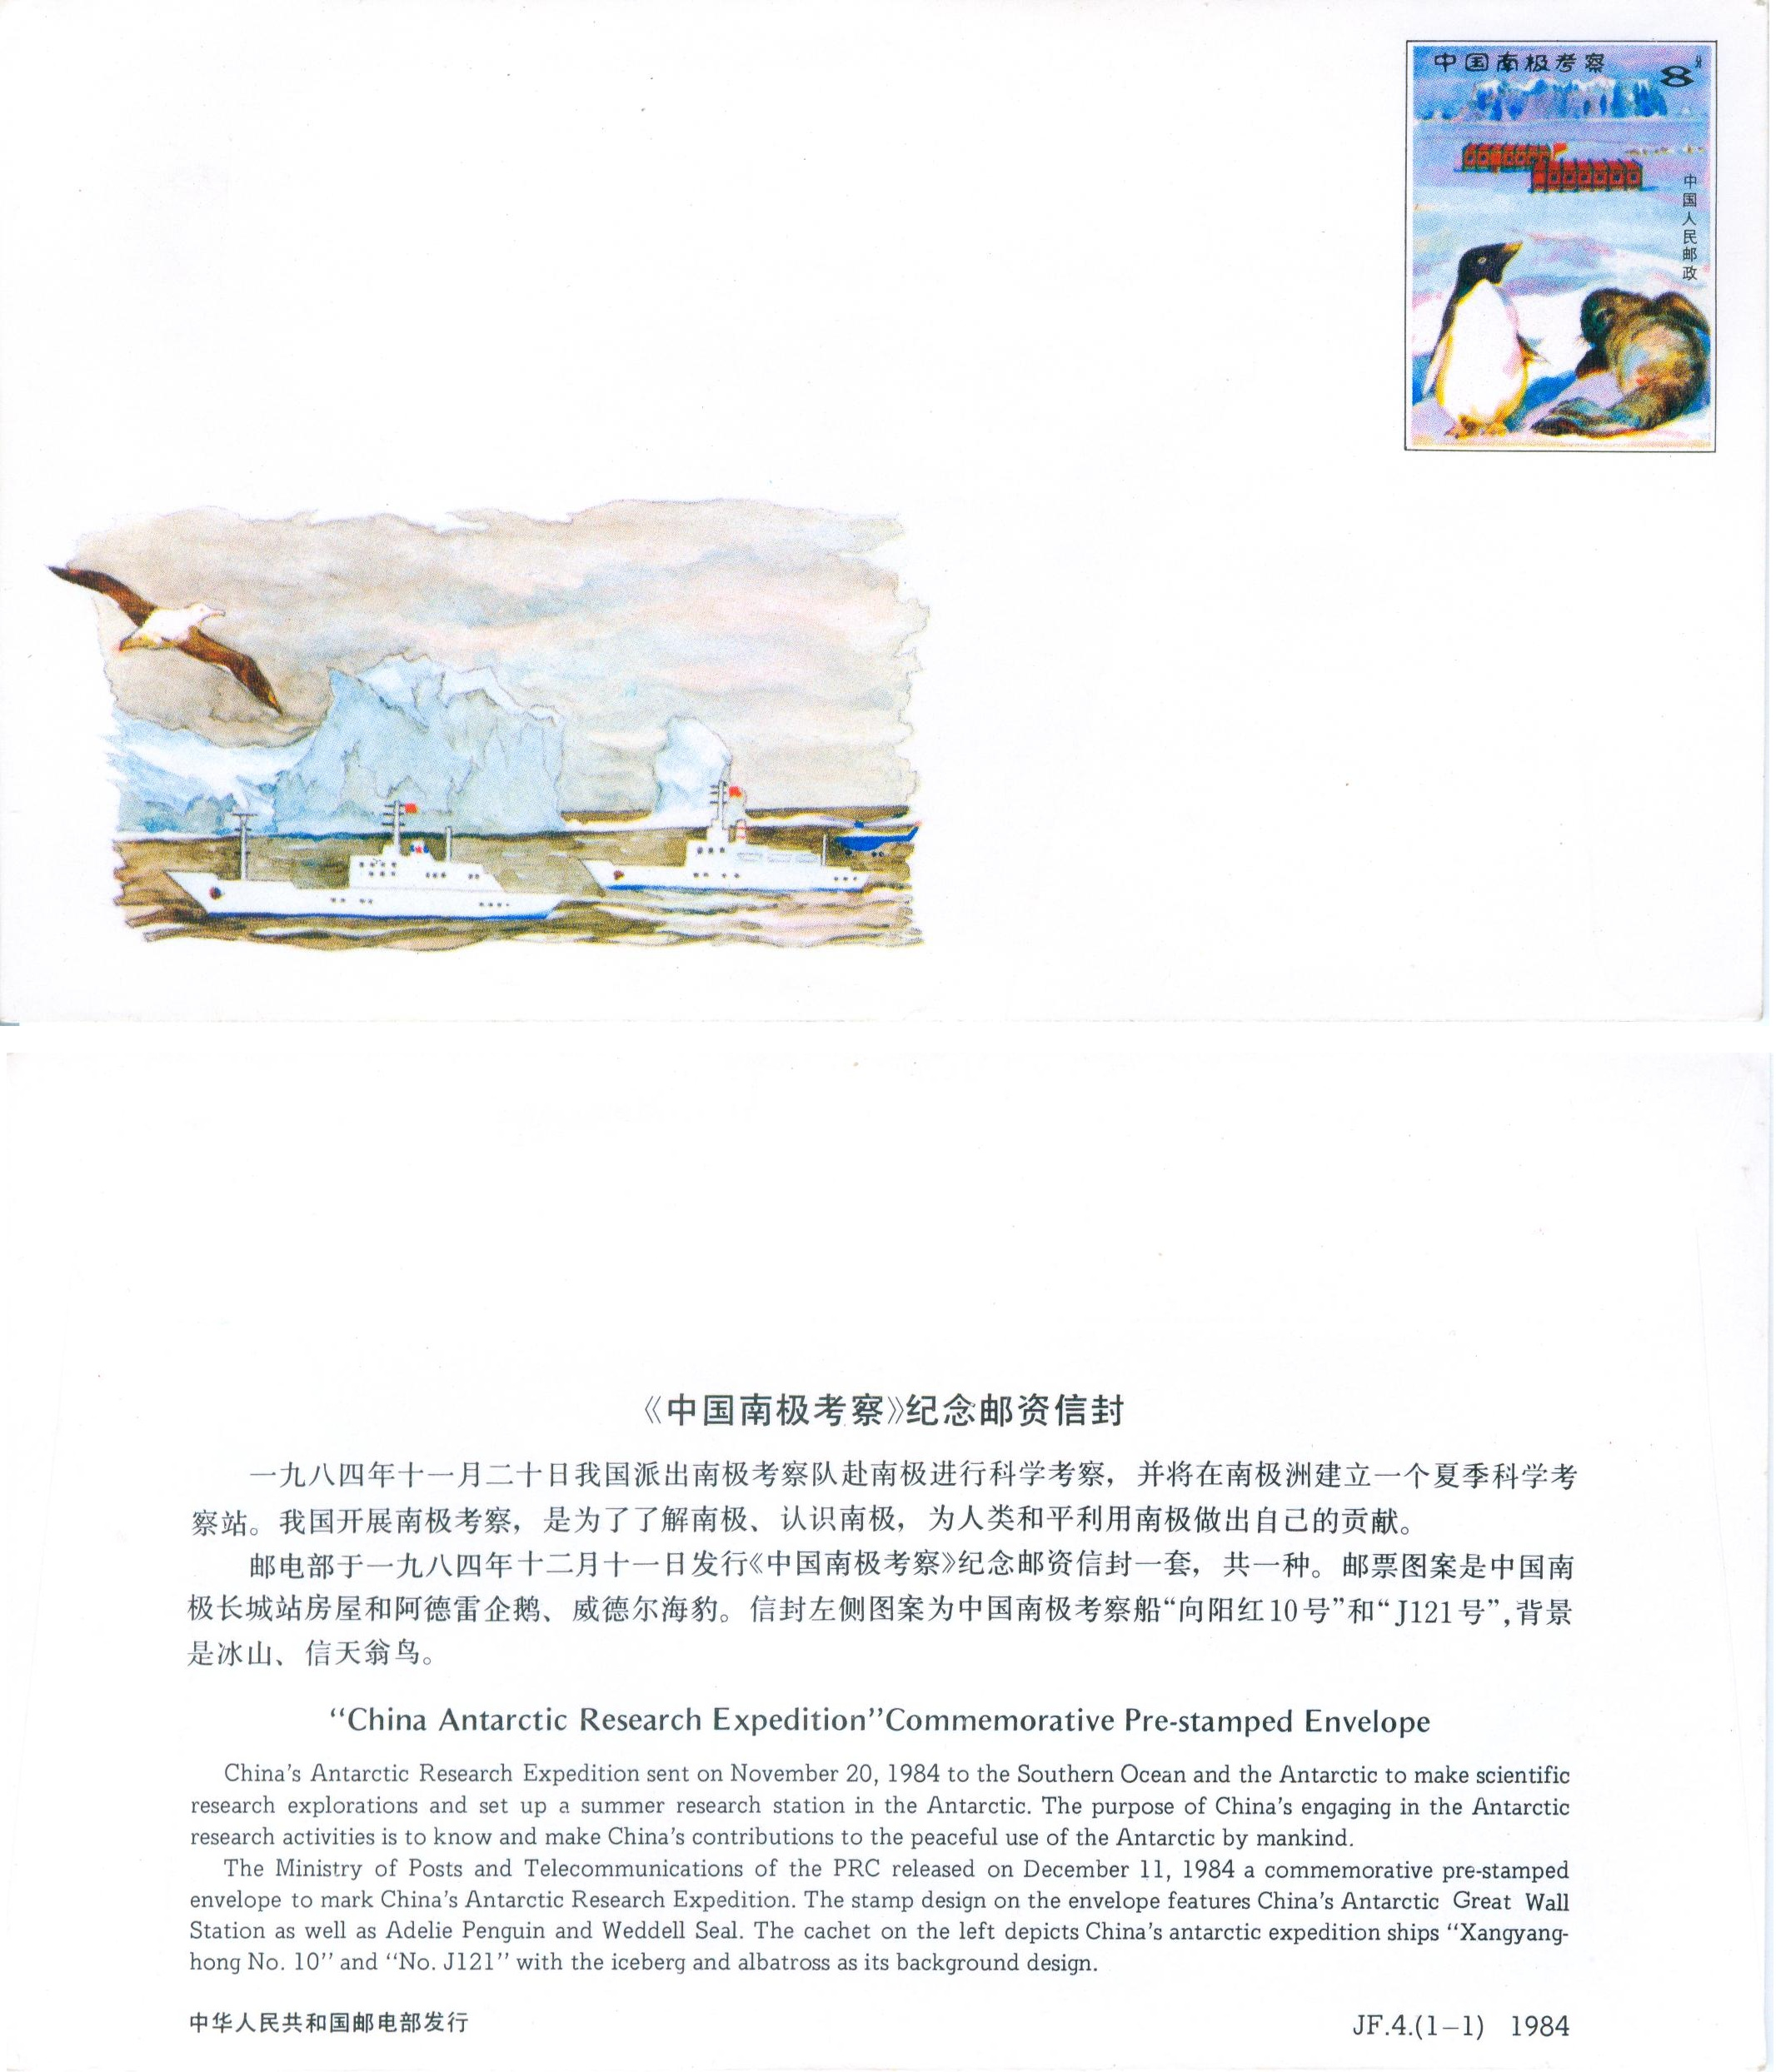 JF4, China Antarctic Expedition 1984 (P.R.China 4th Postal Envelope)